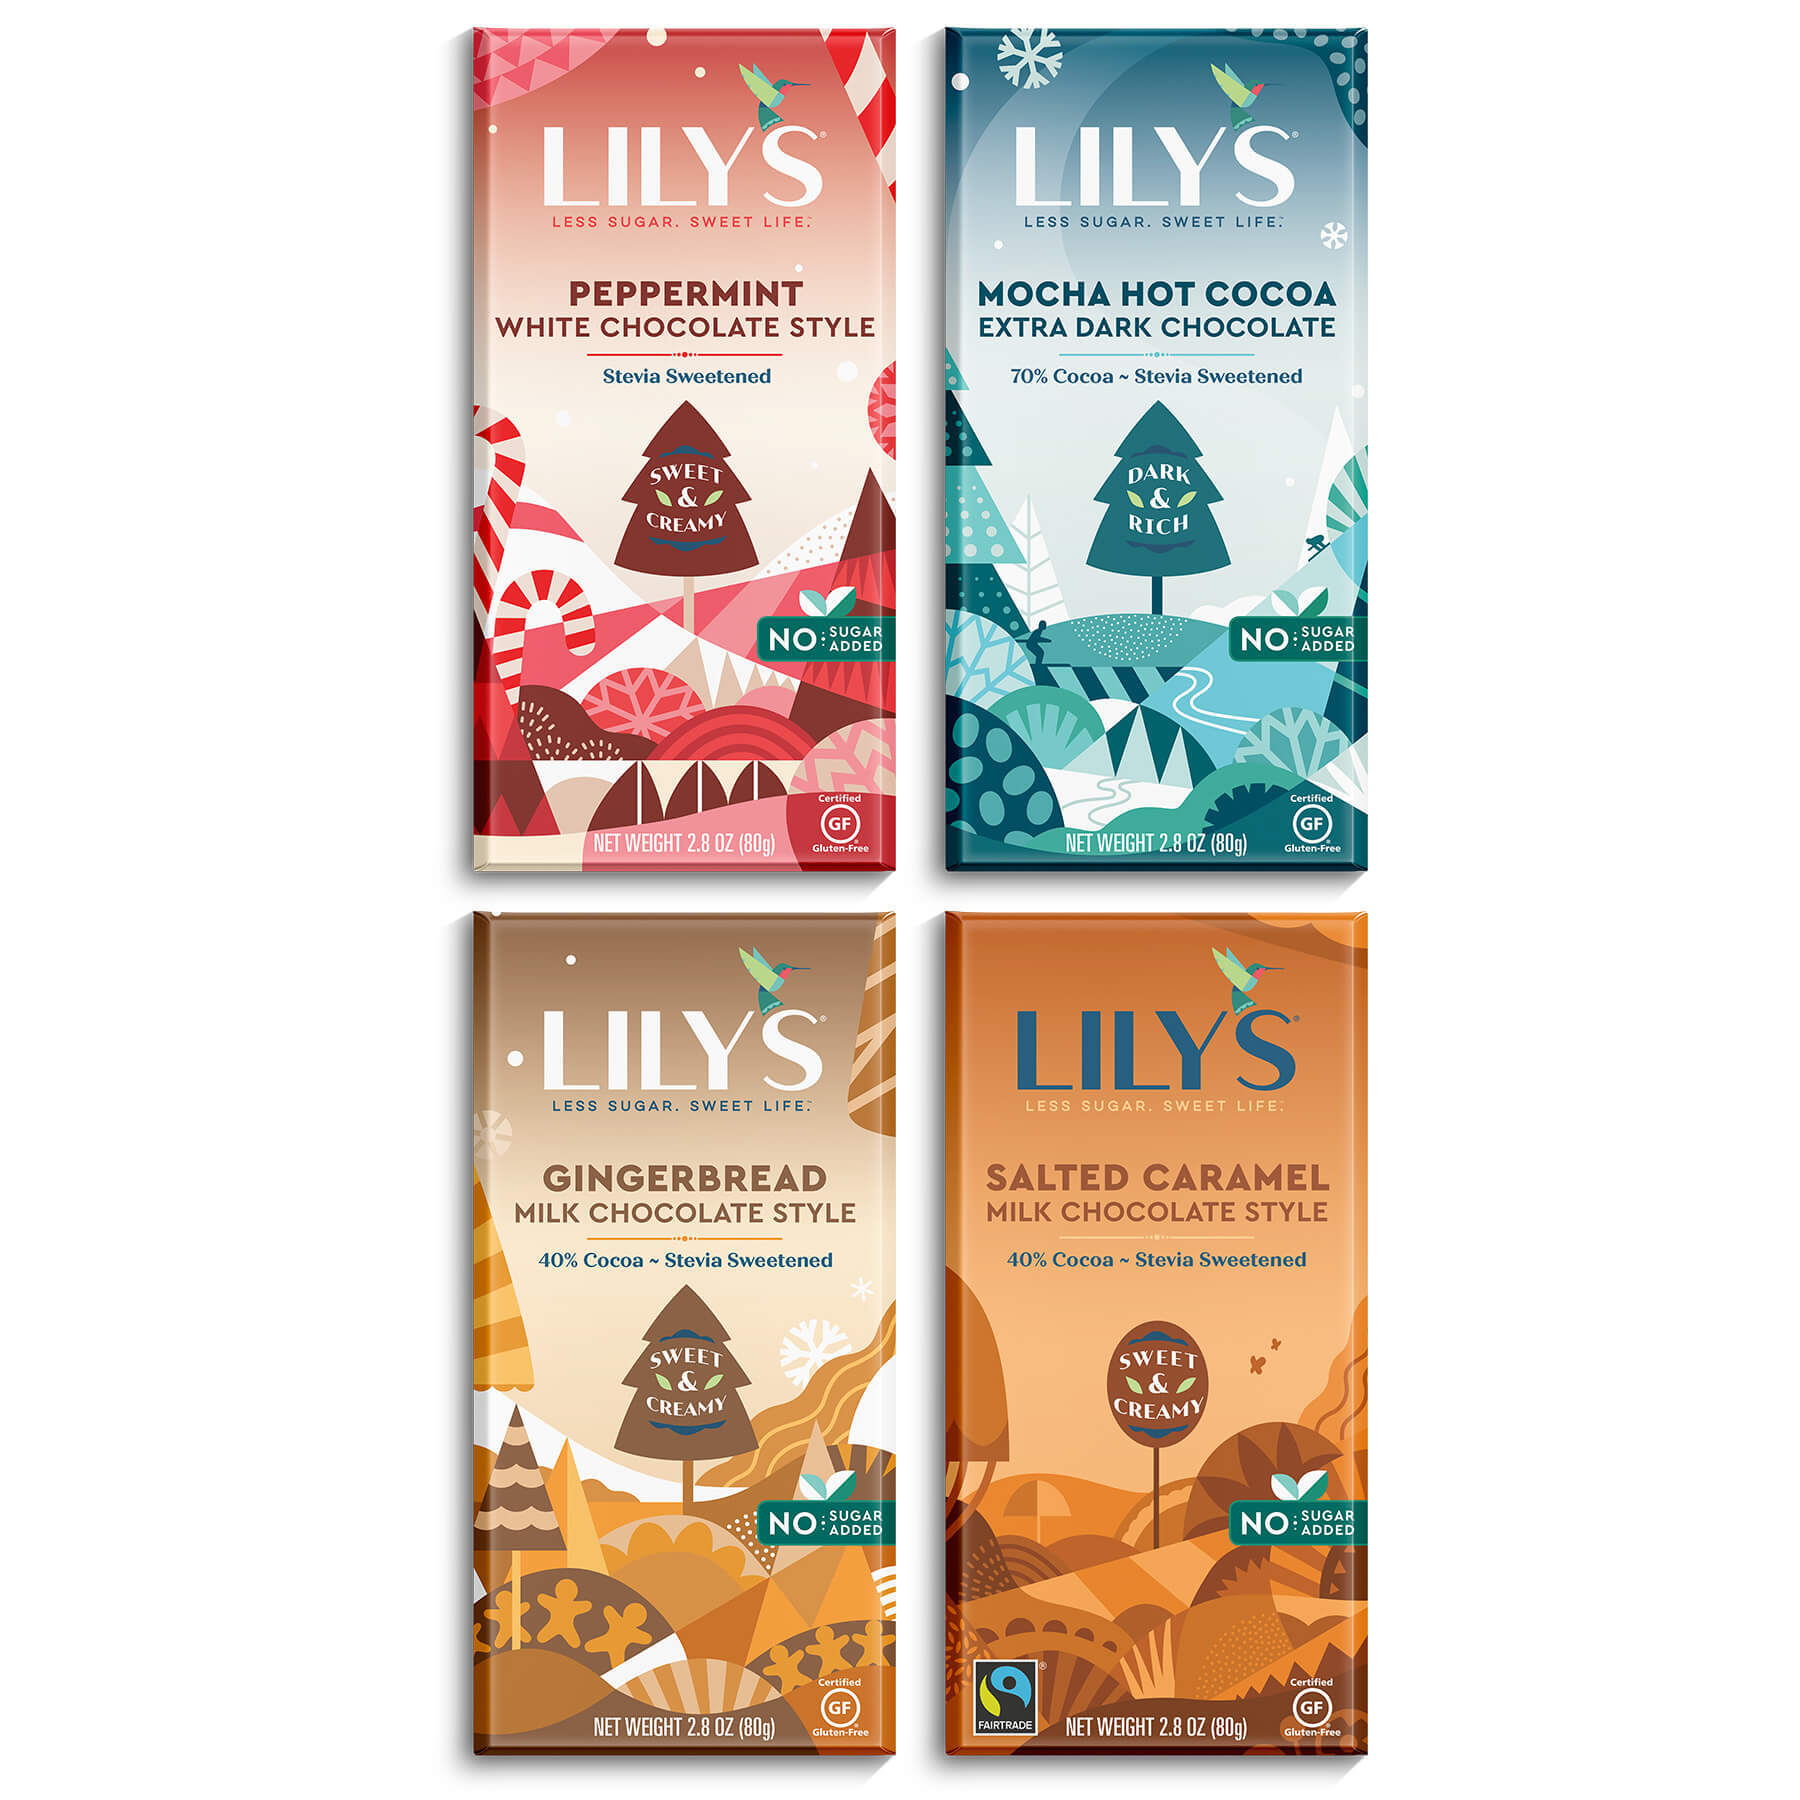 Lily's Holiday Chocolate Bars